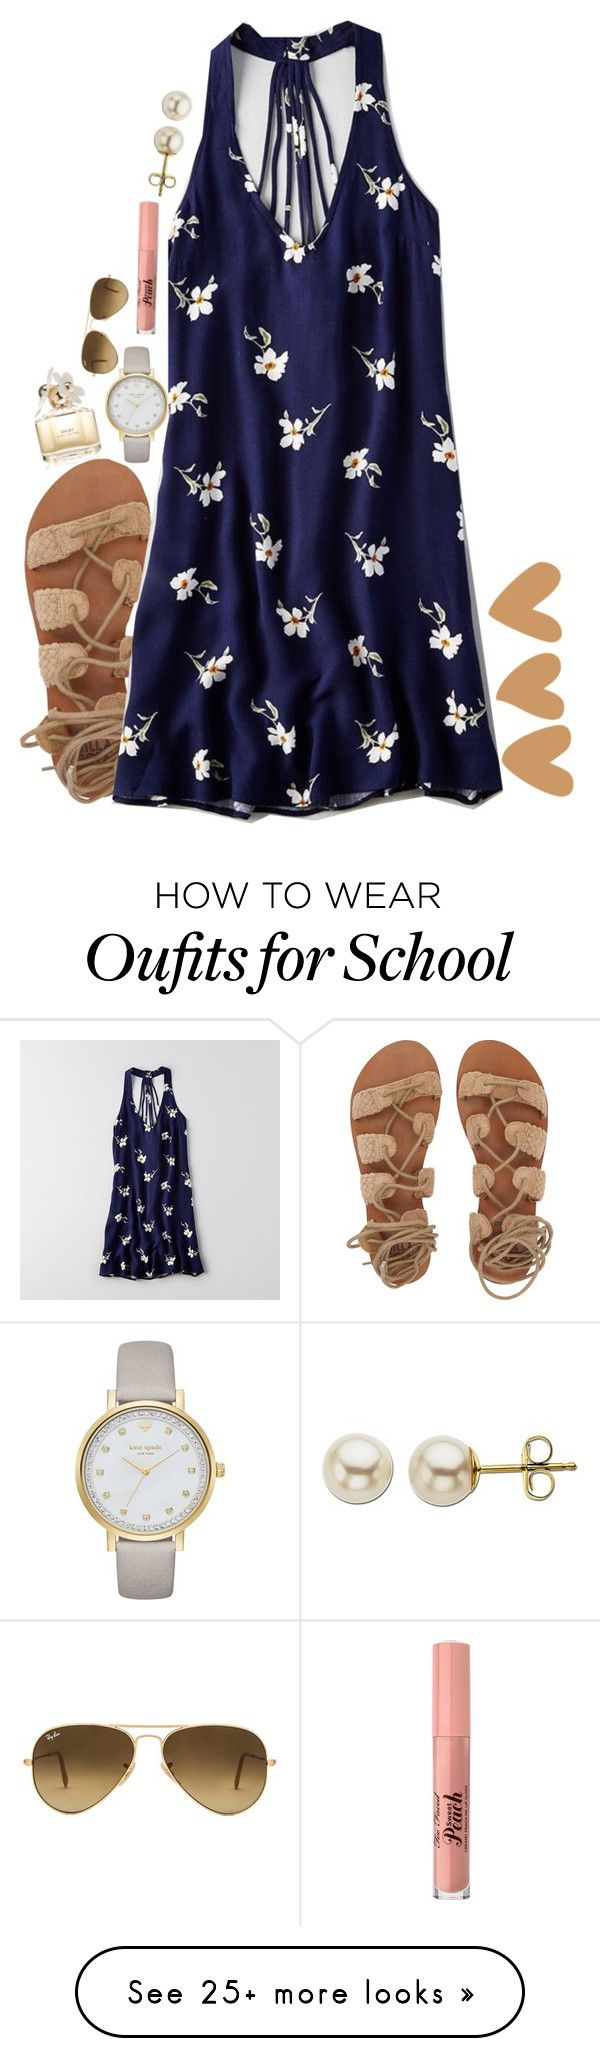 """i can not wait until spring break! so done with school already."" by alexislynea-804 on Polyvore featuring Billabong, Too Faced Cosmetics, Kate Spade, American Eagle Outfitters, Ray-Ban, Marc Jacobs and Lord & Taylor"